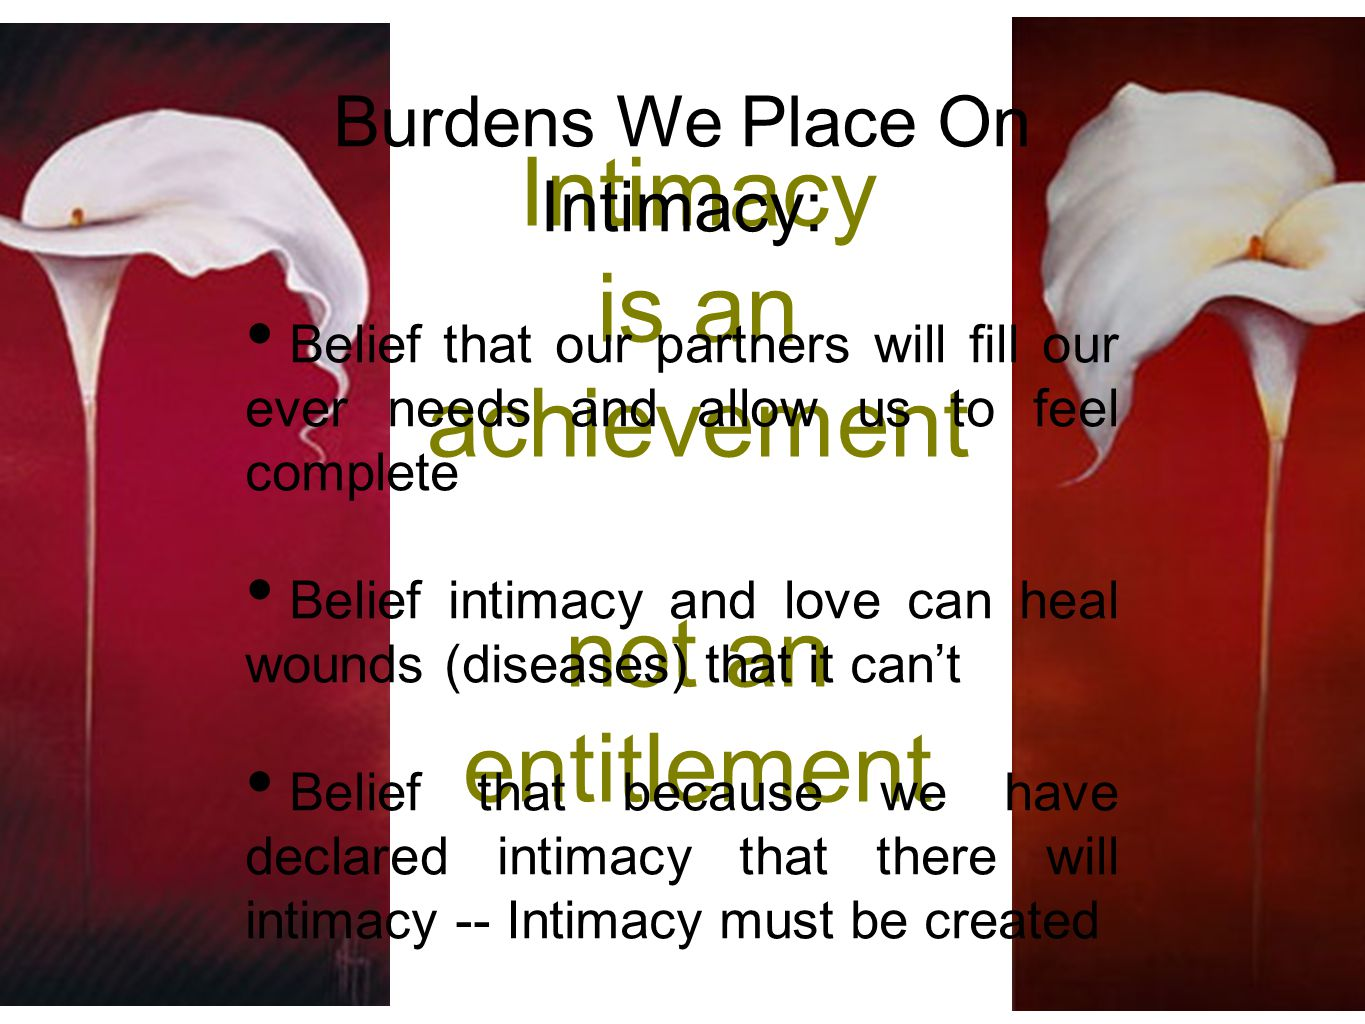 Burdens We Place On Intimacy: